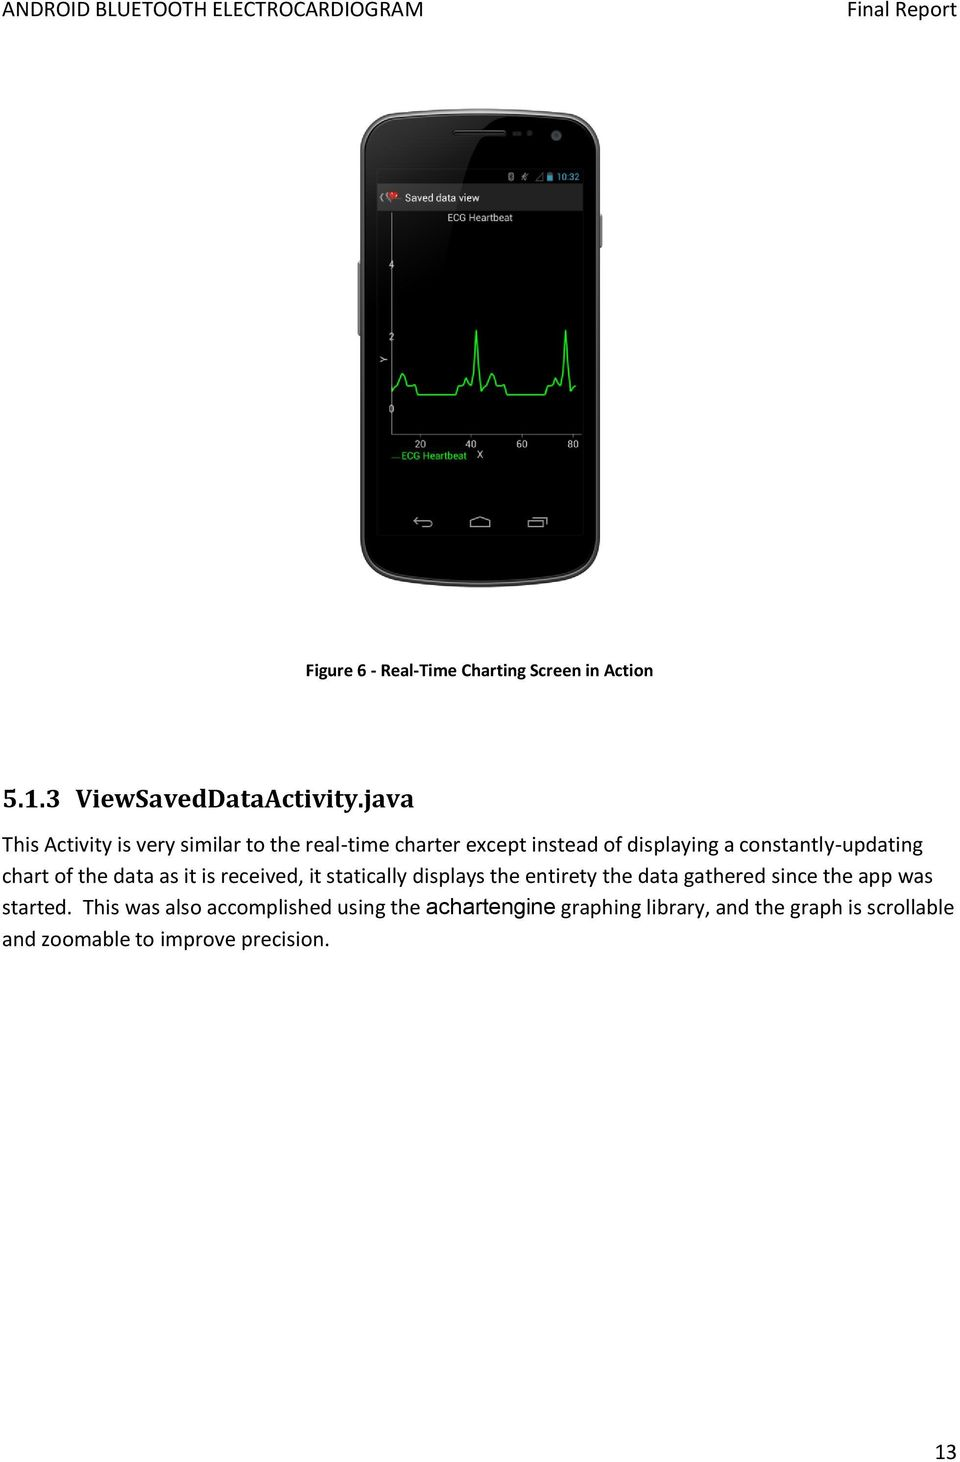 Android Bluetooth Electrocardiogram - PDF